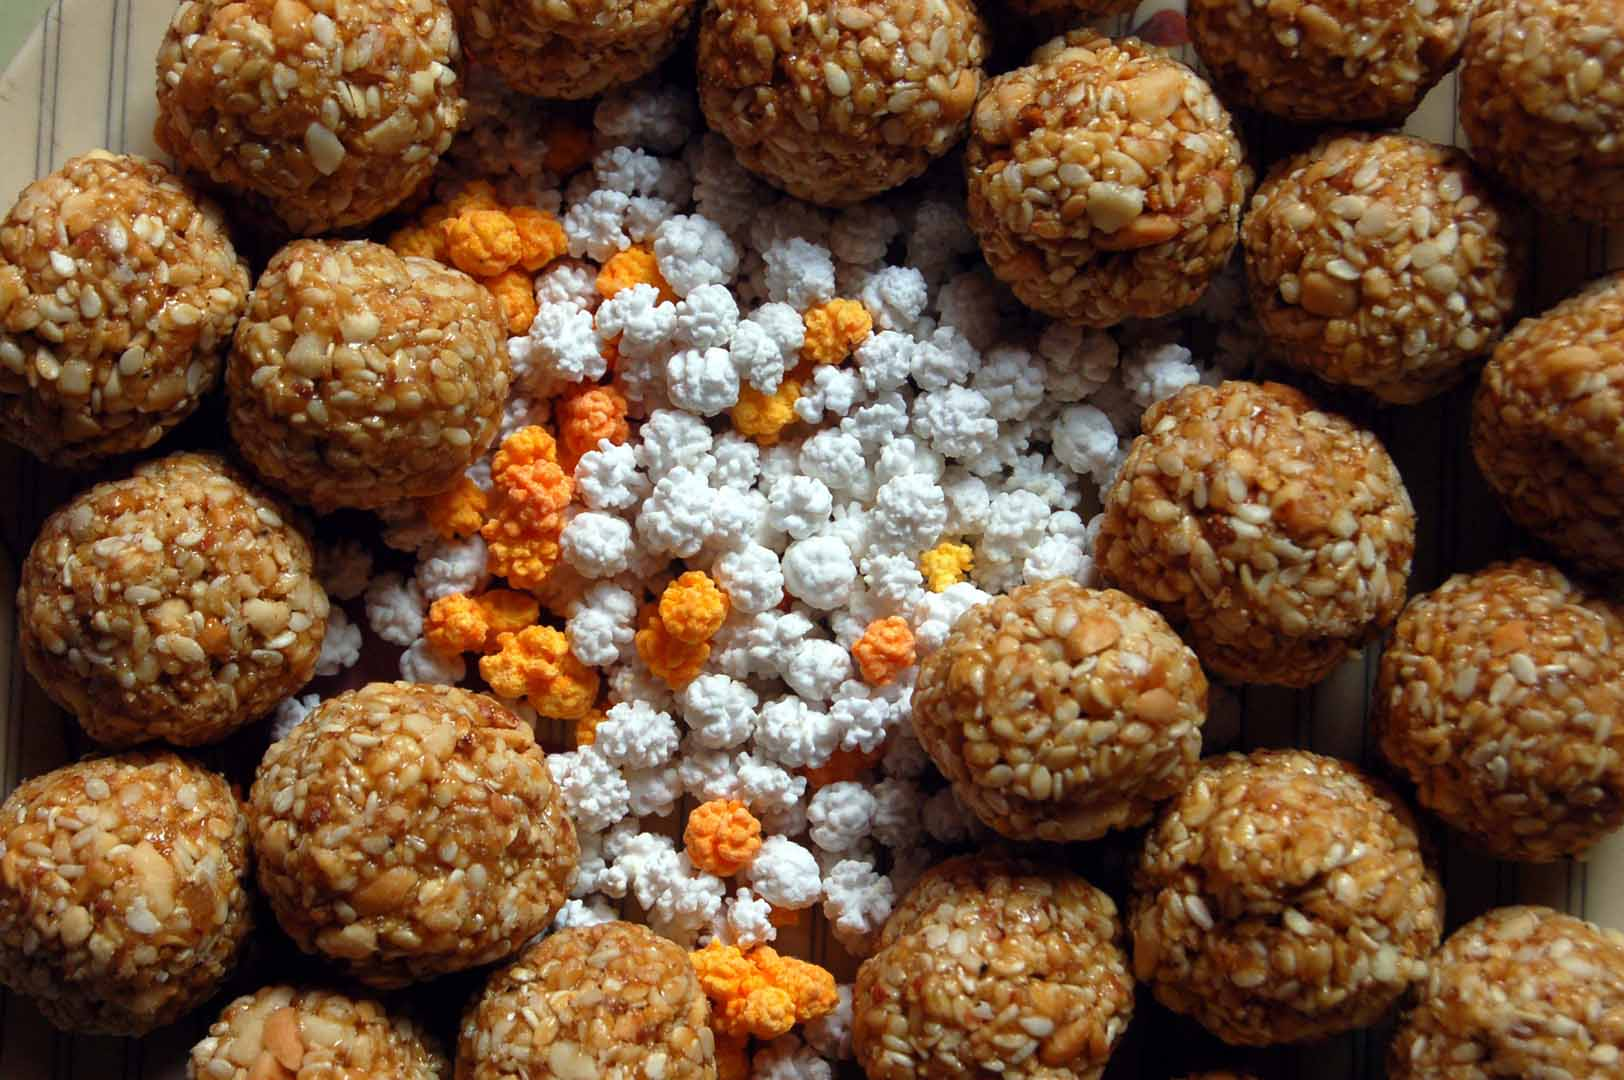 MAKAR SANKRANTI FESTIVAL INFORMATION IN MARATHI LANGUAGE